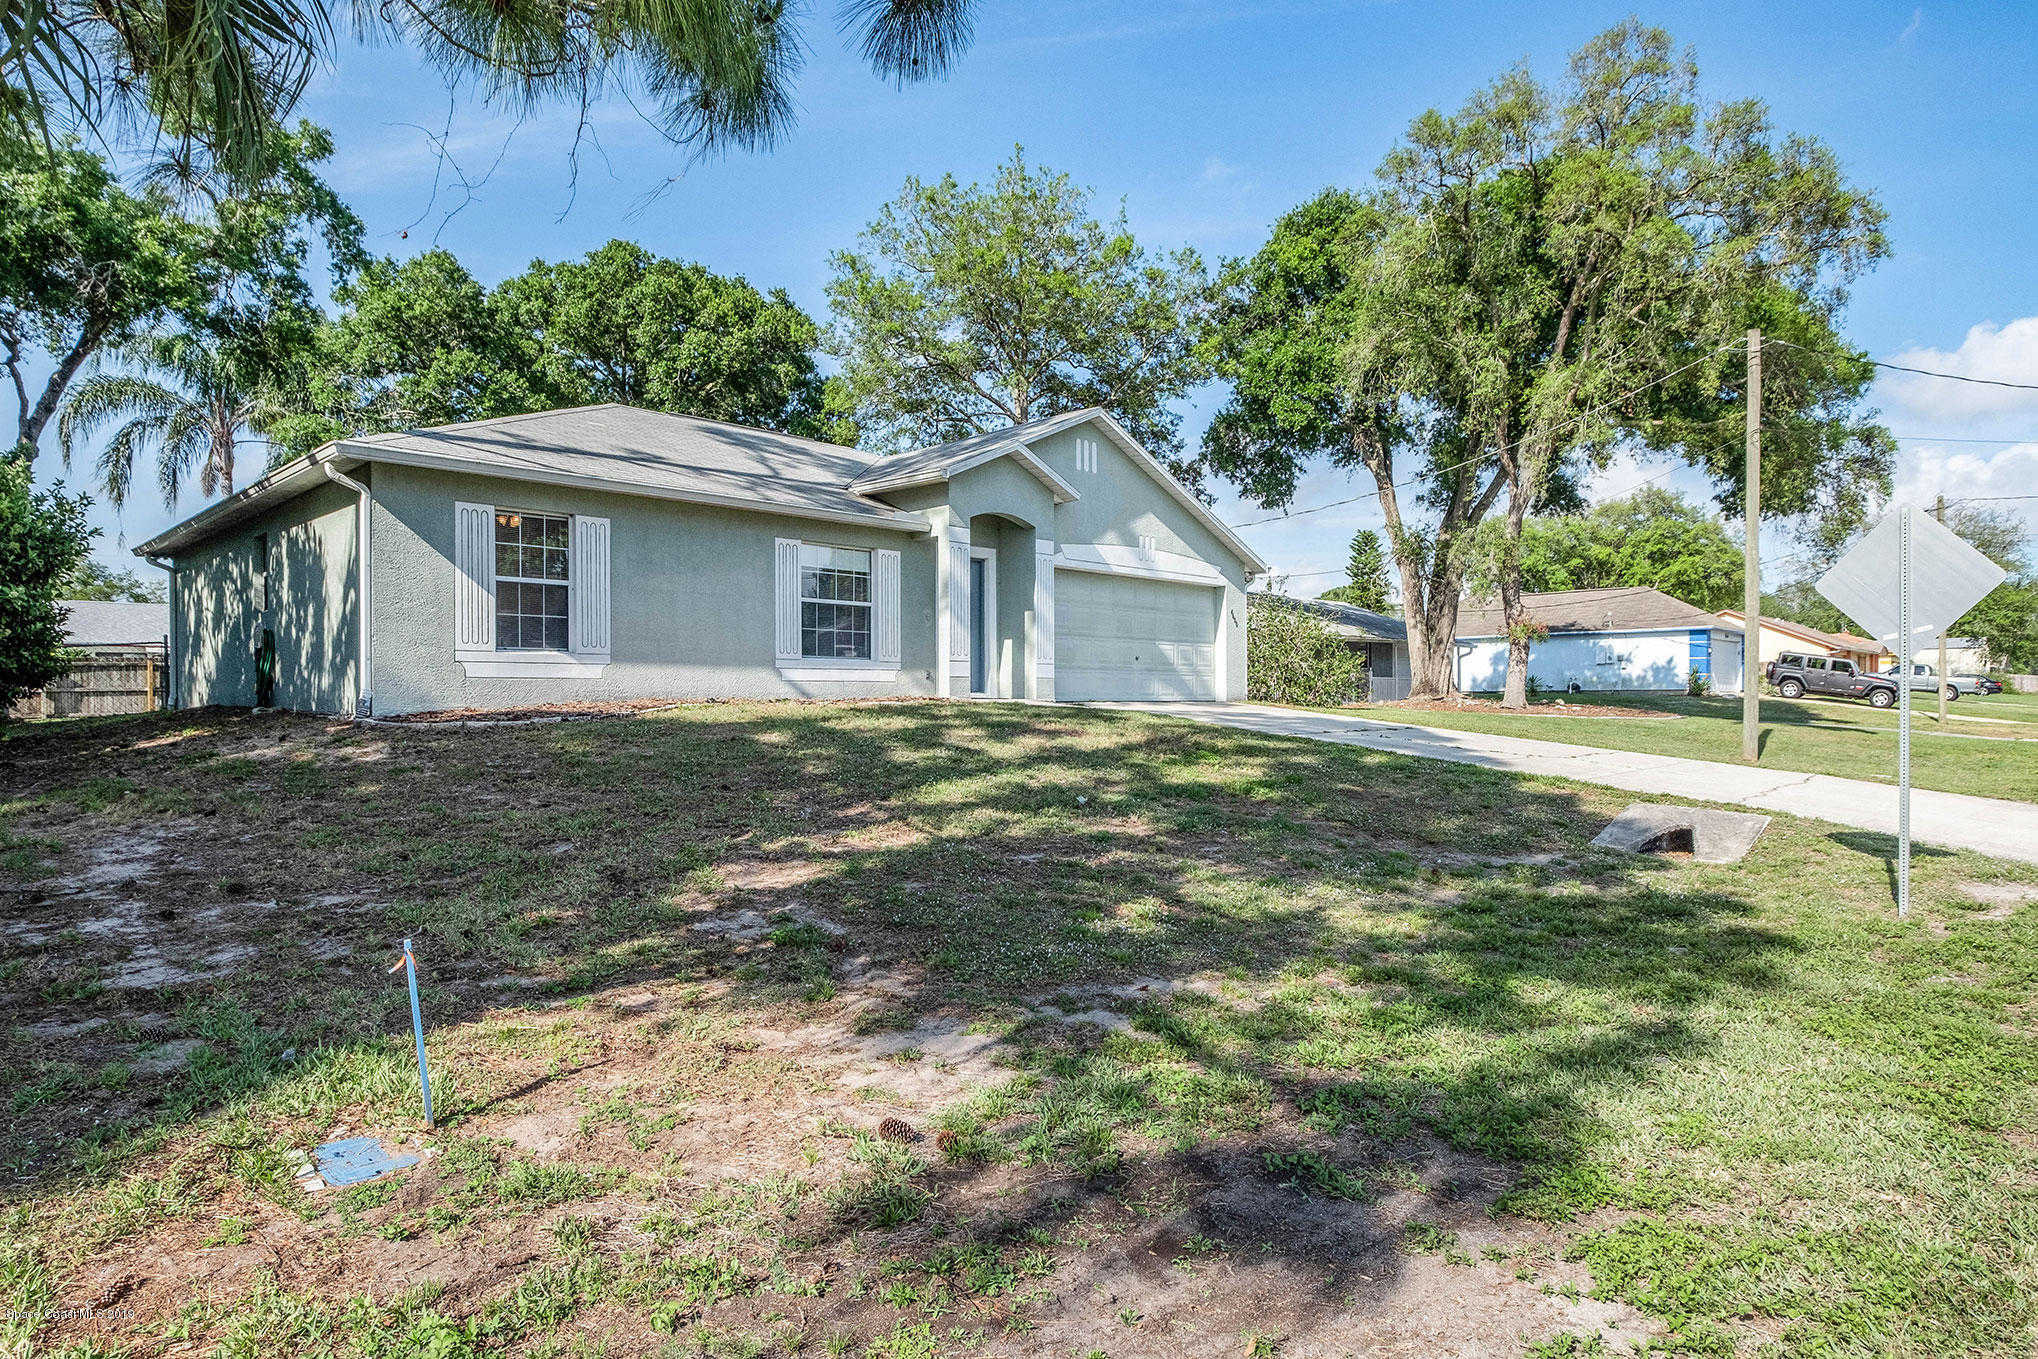 4600 Sugartown Street, Cocoa, FL 32927 now has a new price of $205,000!